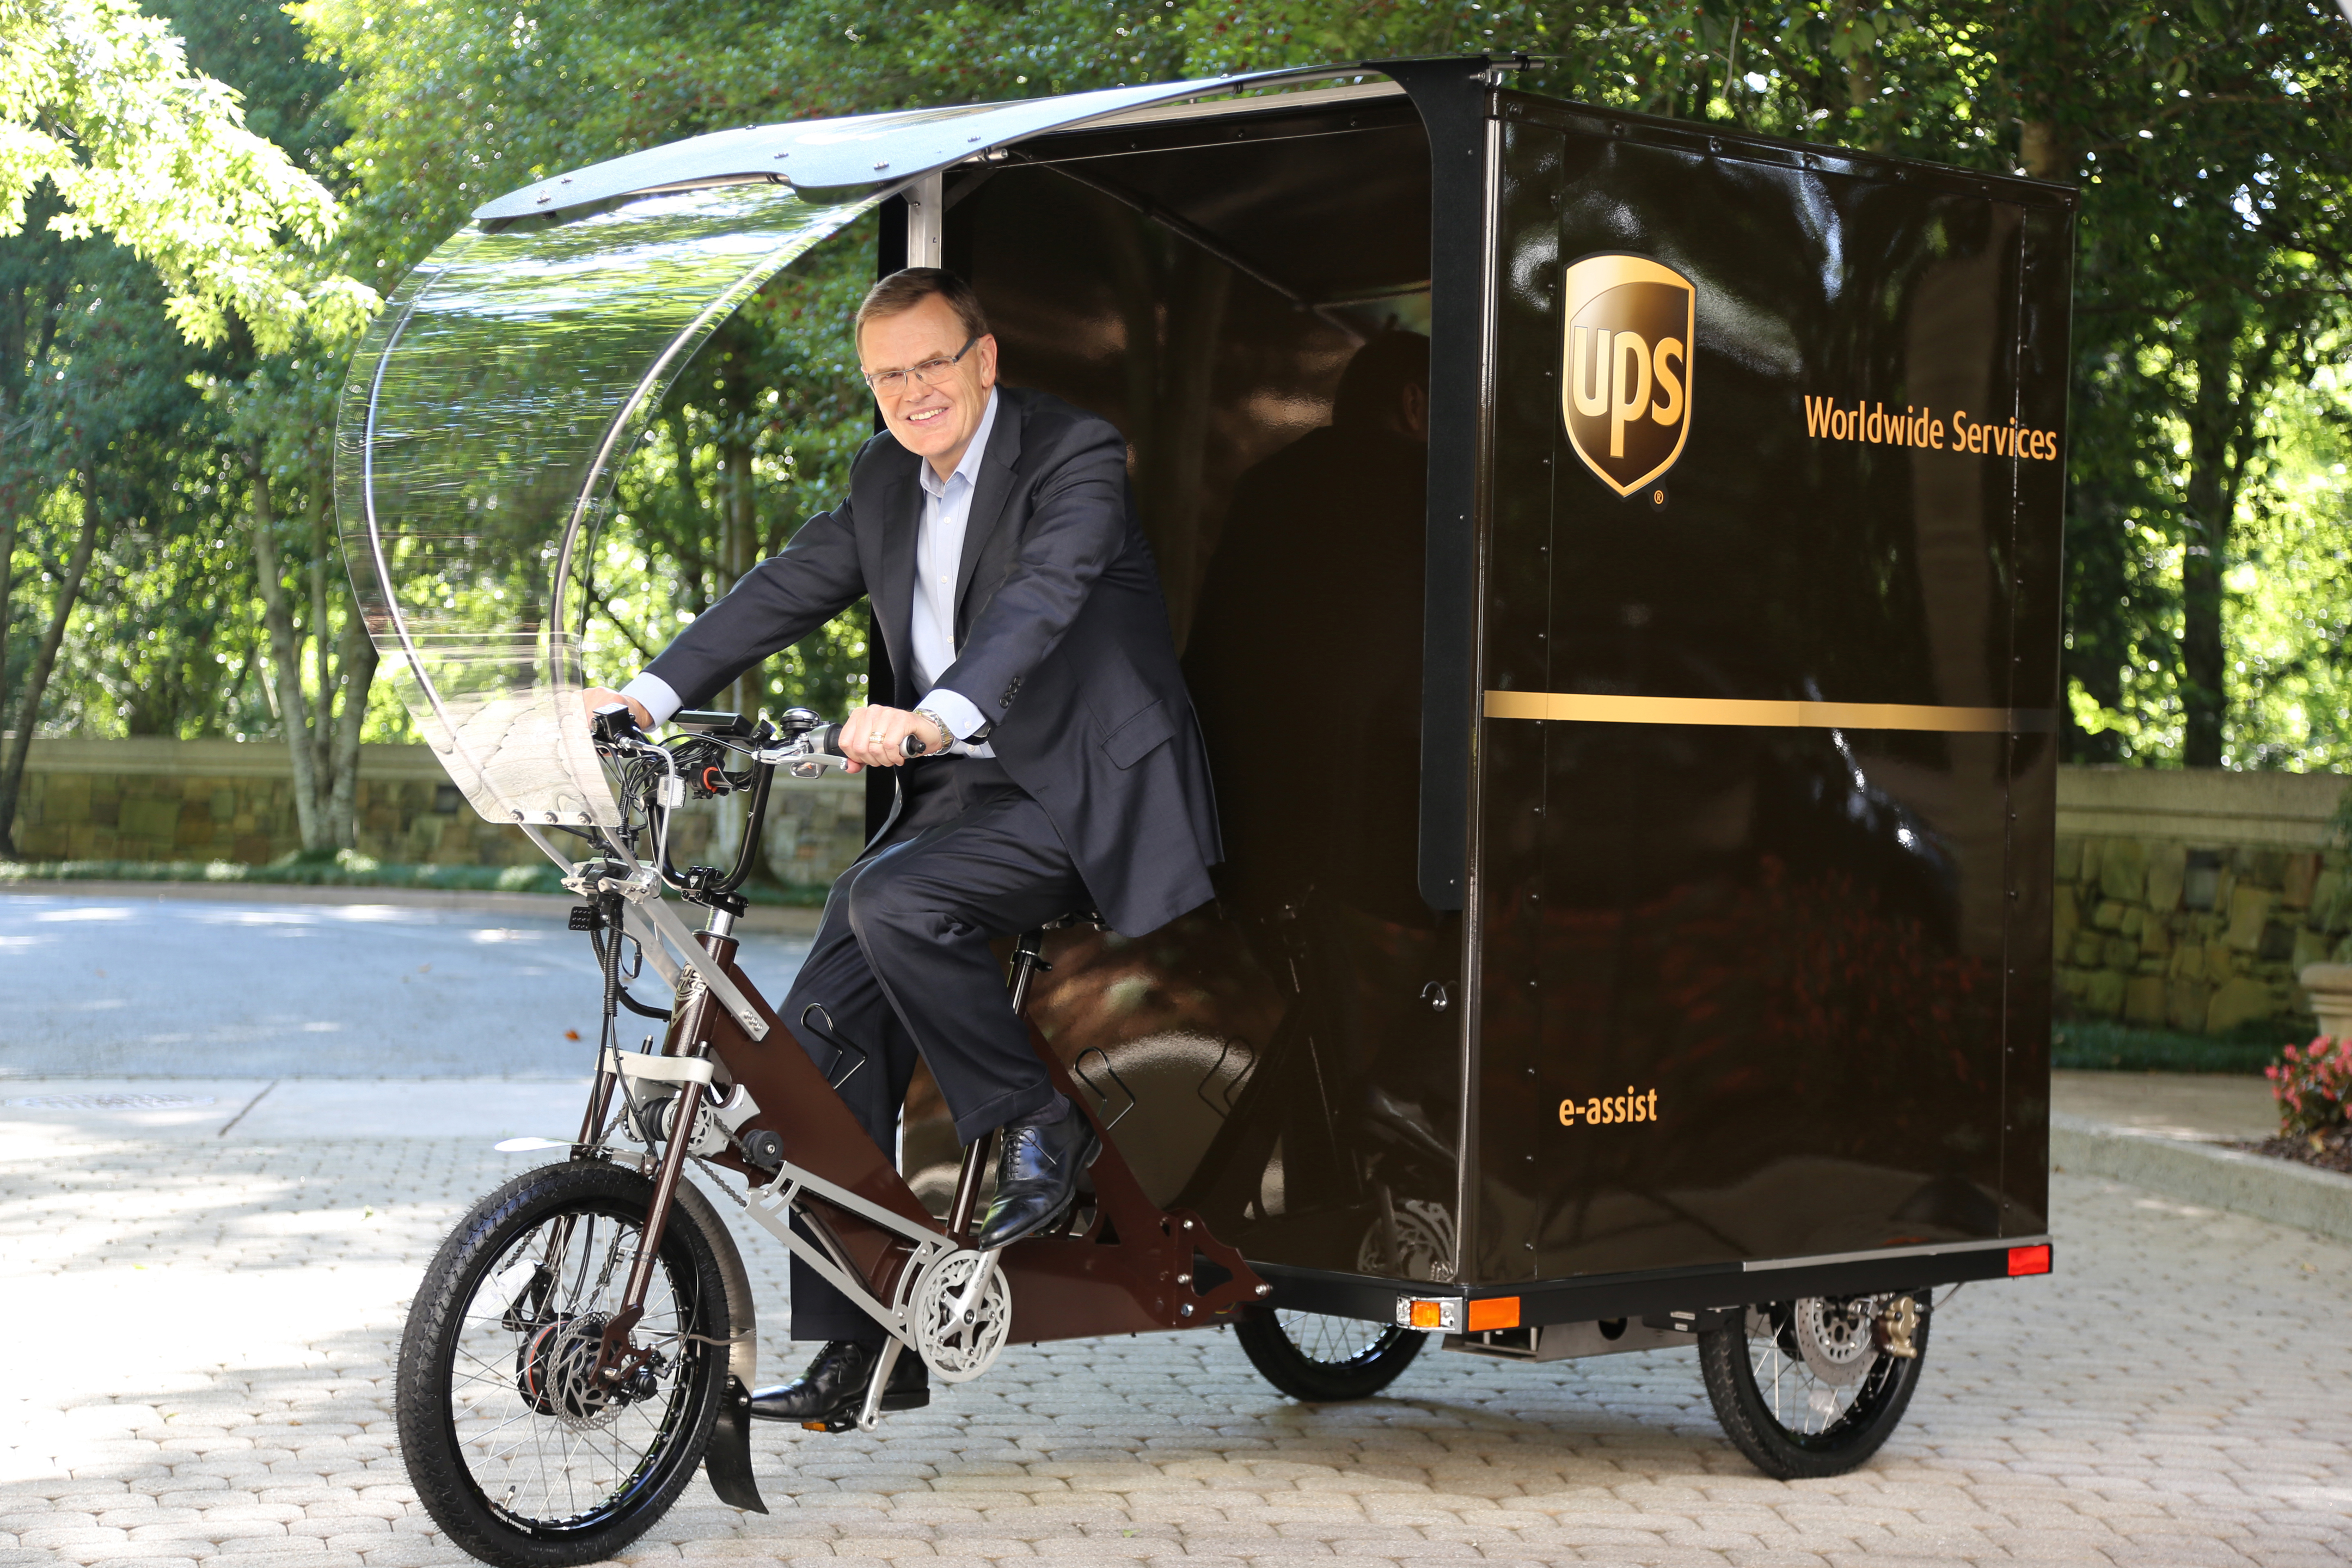 mobile0c9a66-assets-img-media-abney%20ebike%20pedaling